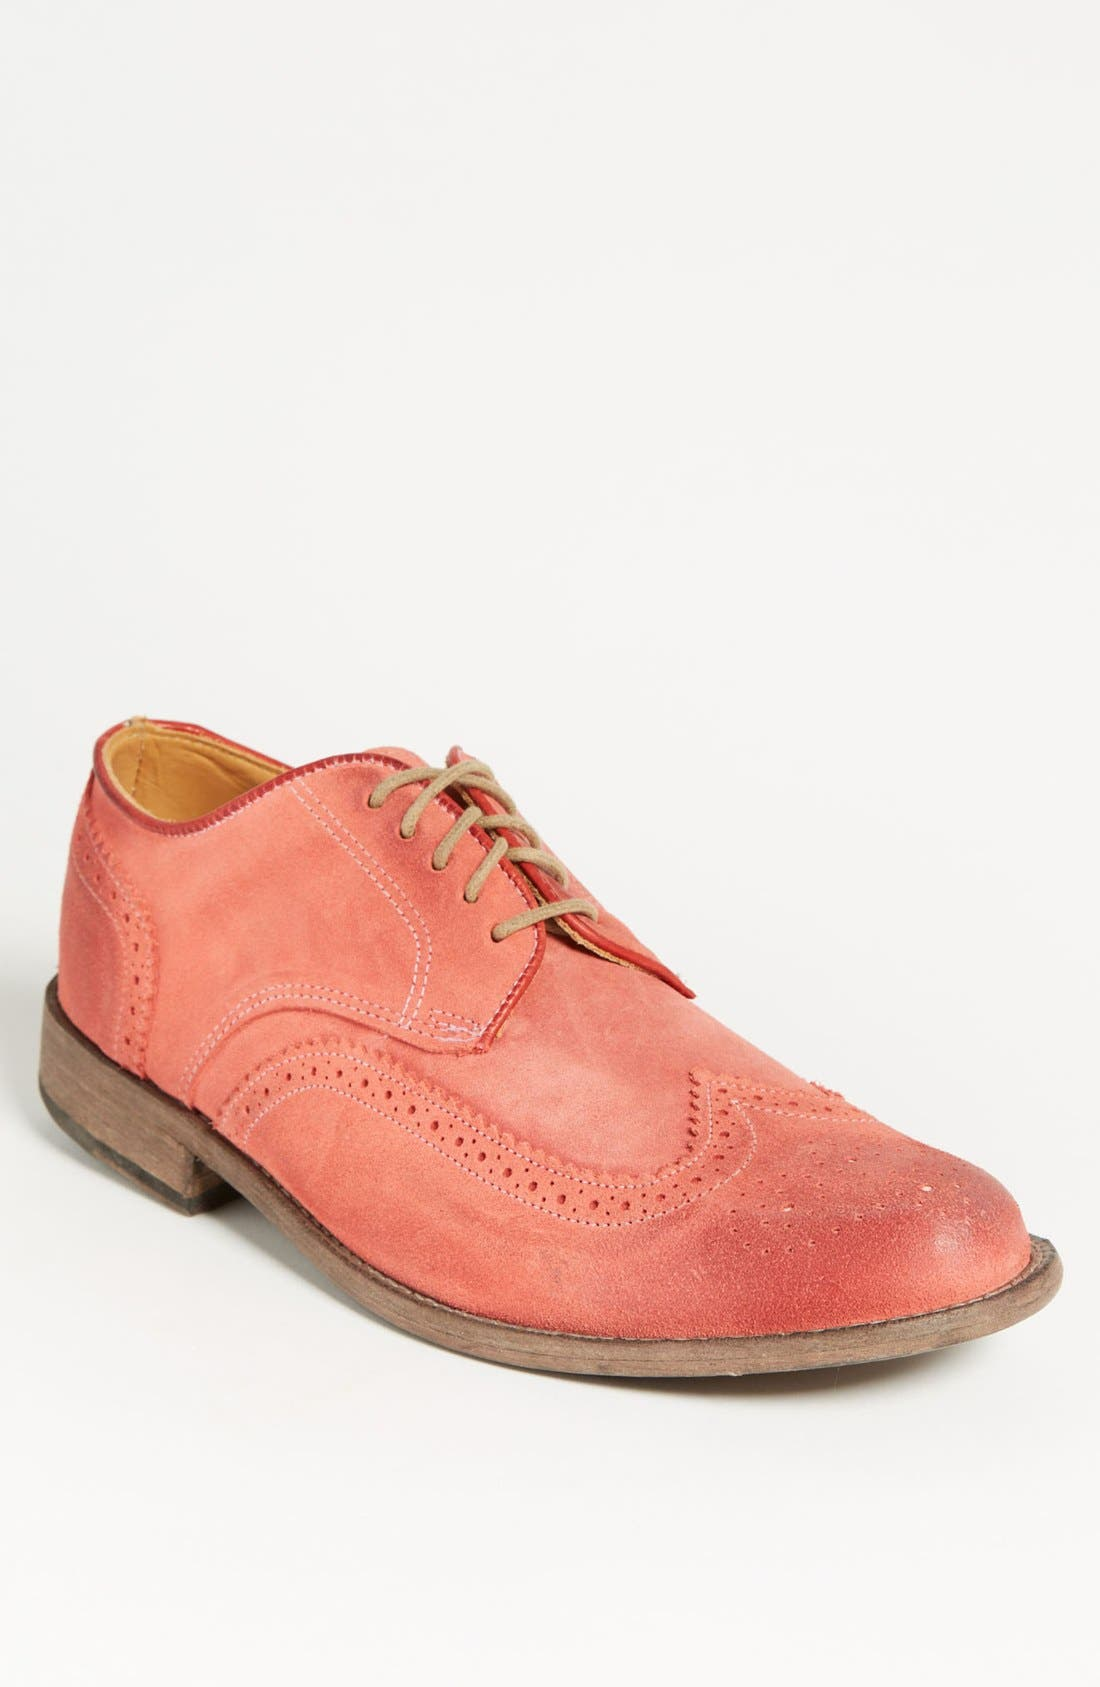 Main Image - Vintage Shoe Company 'Warren' Wingtip